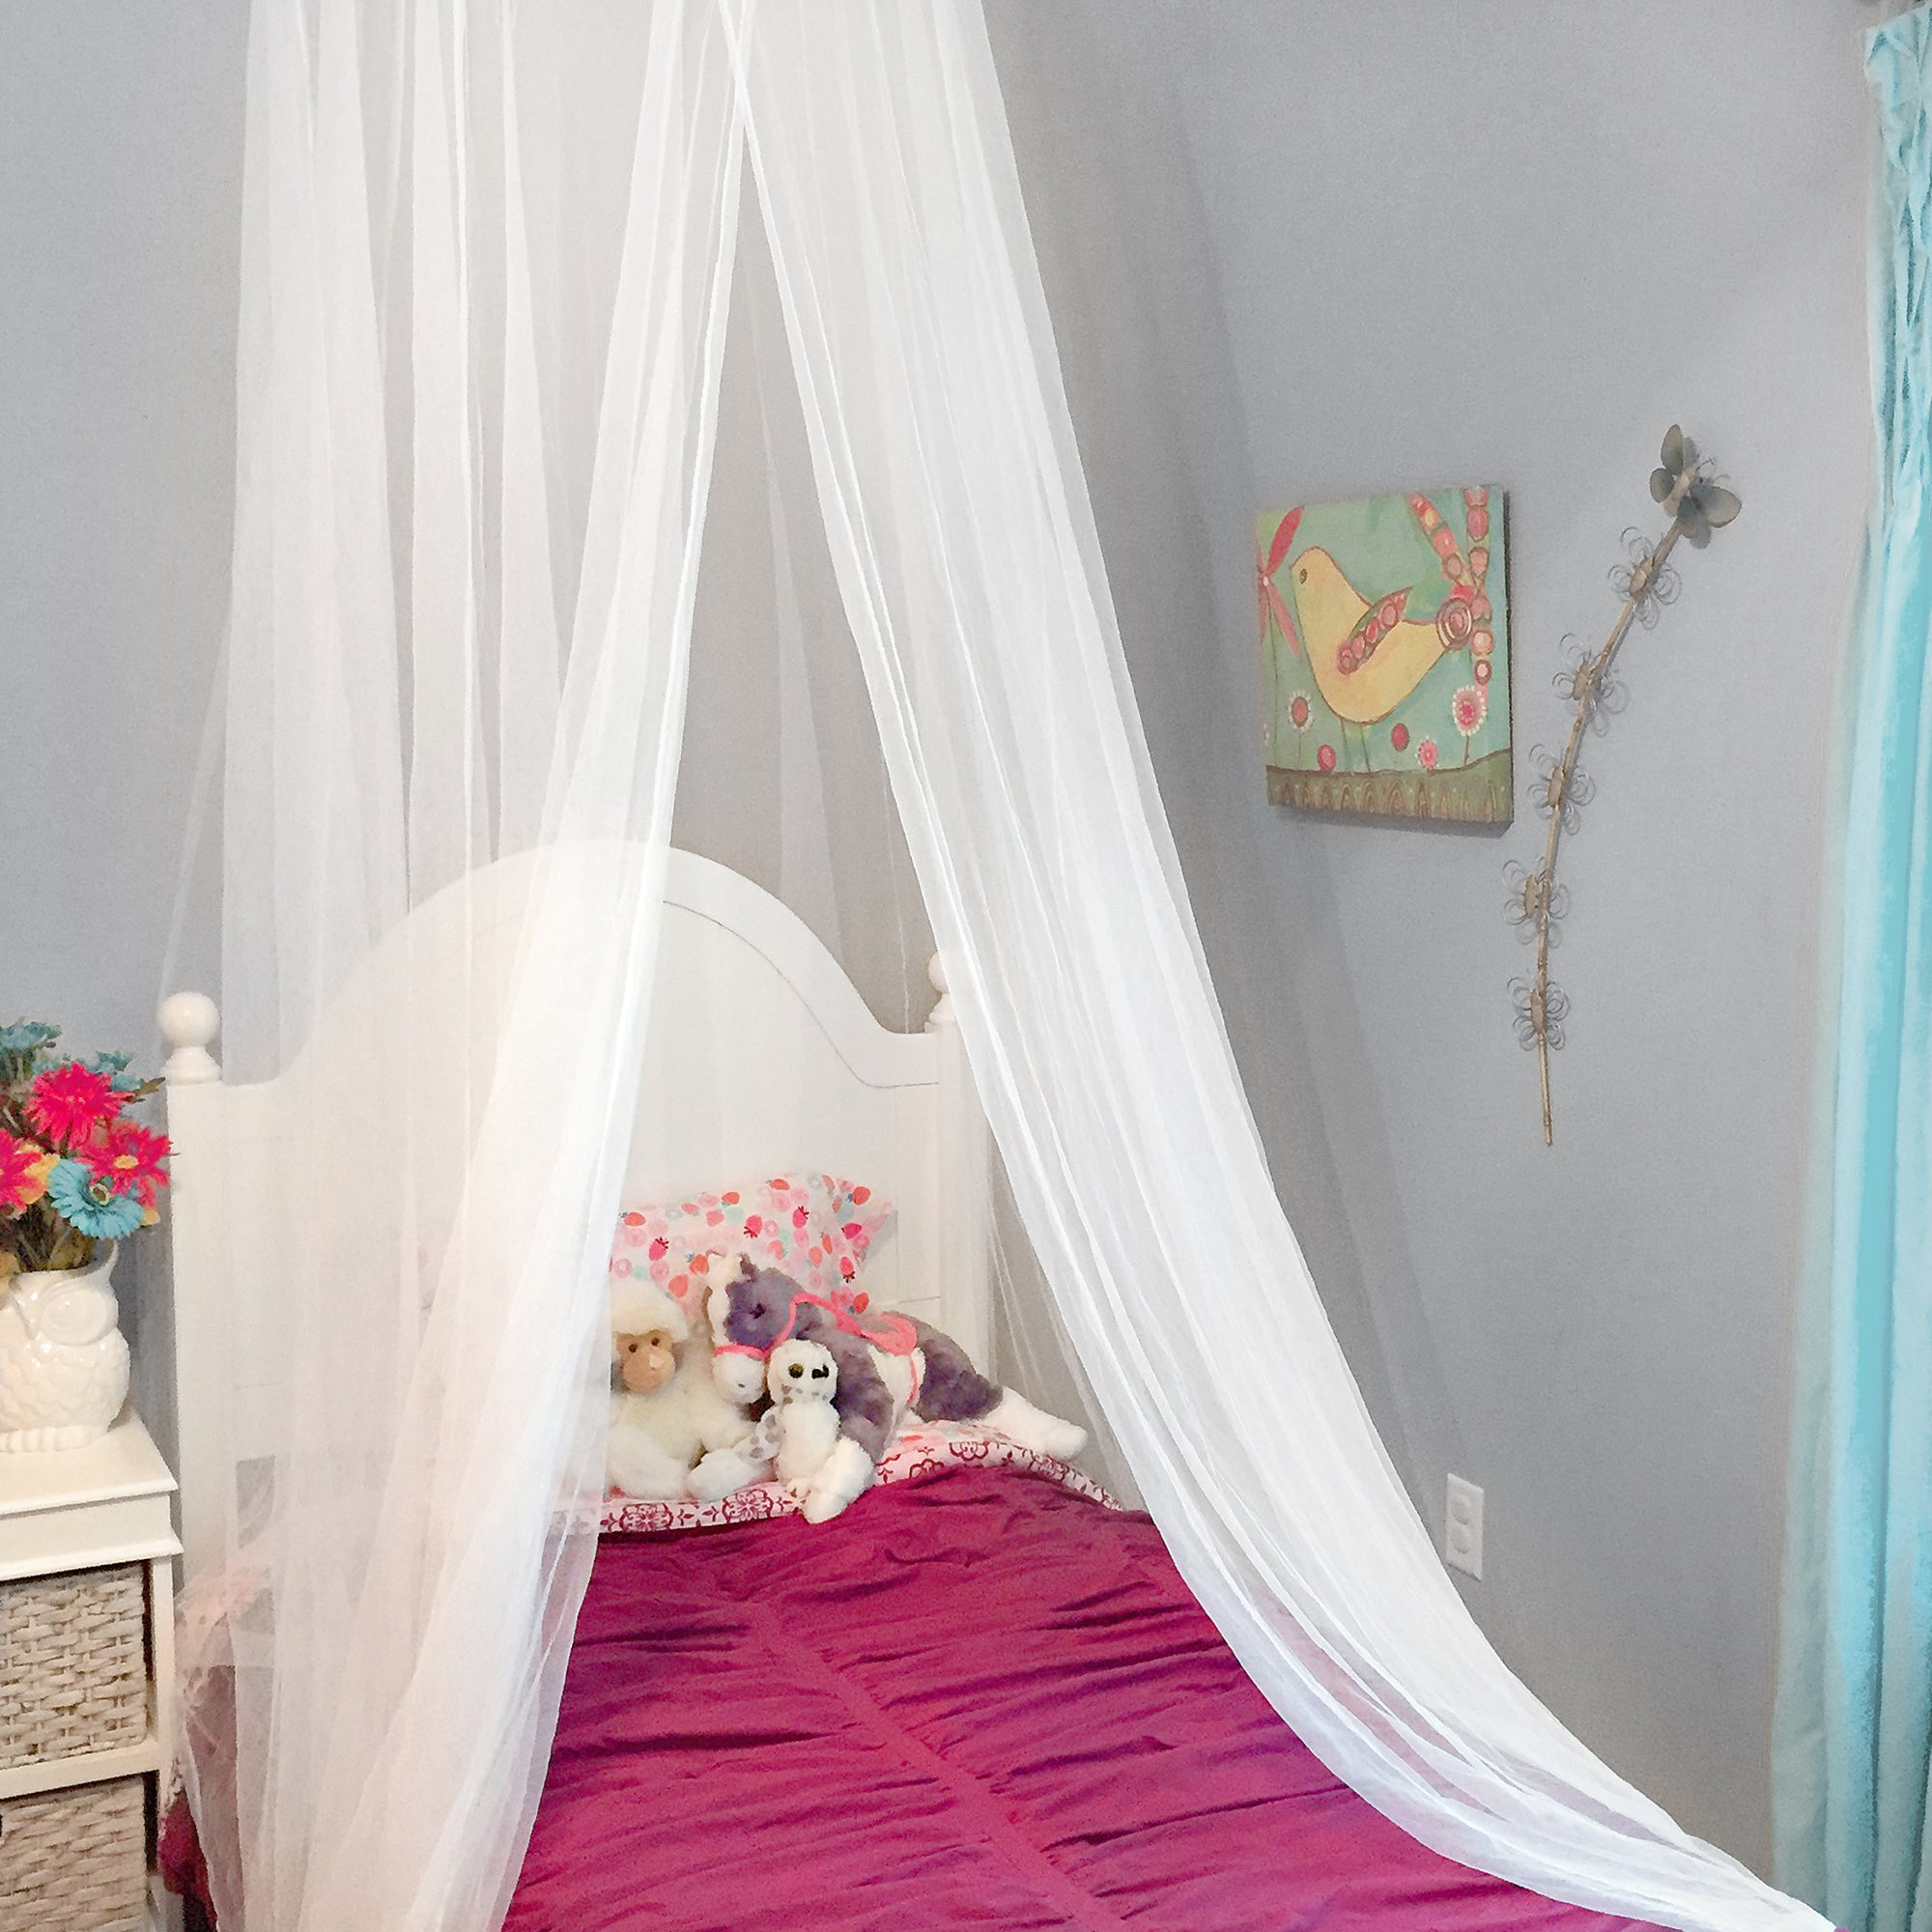 Premium Canopy For Beds | White Mosquito Netting for Teen Girls Bed | Princess Canopy | Free Hanging Kit and Travel Pouch